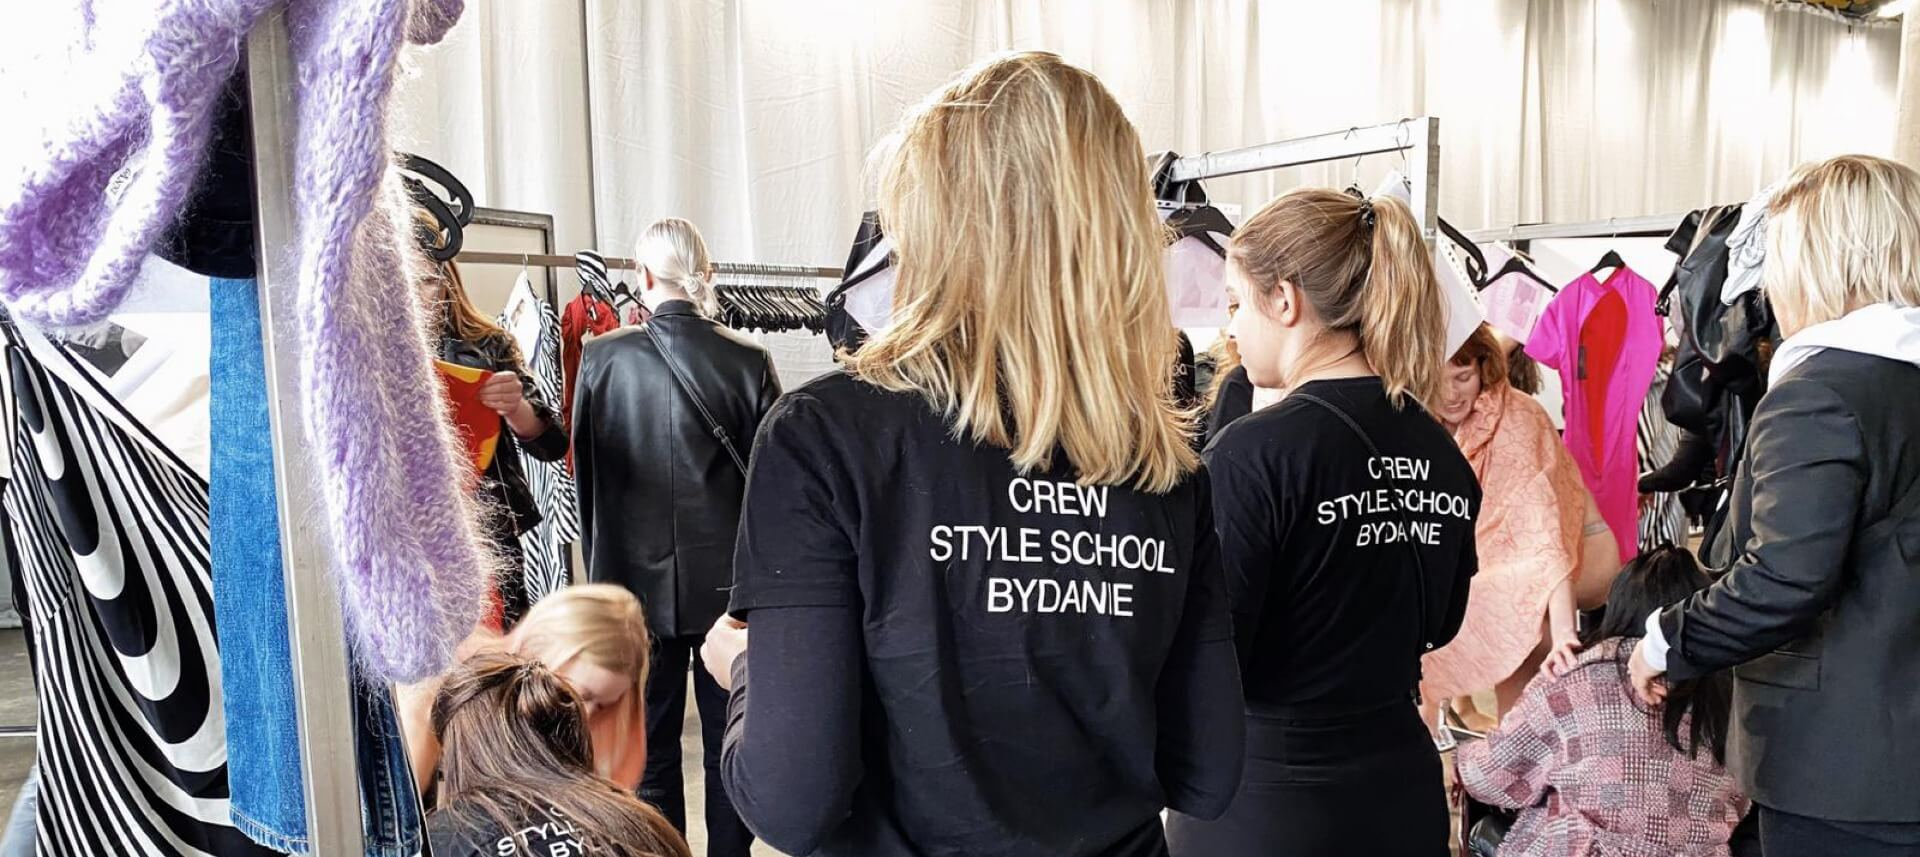 Backstage Report: Style School ByDanie's Nilse over haar Ervaring als Dresser